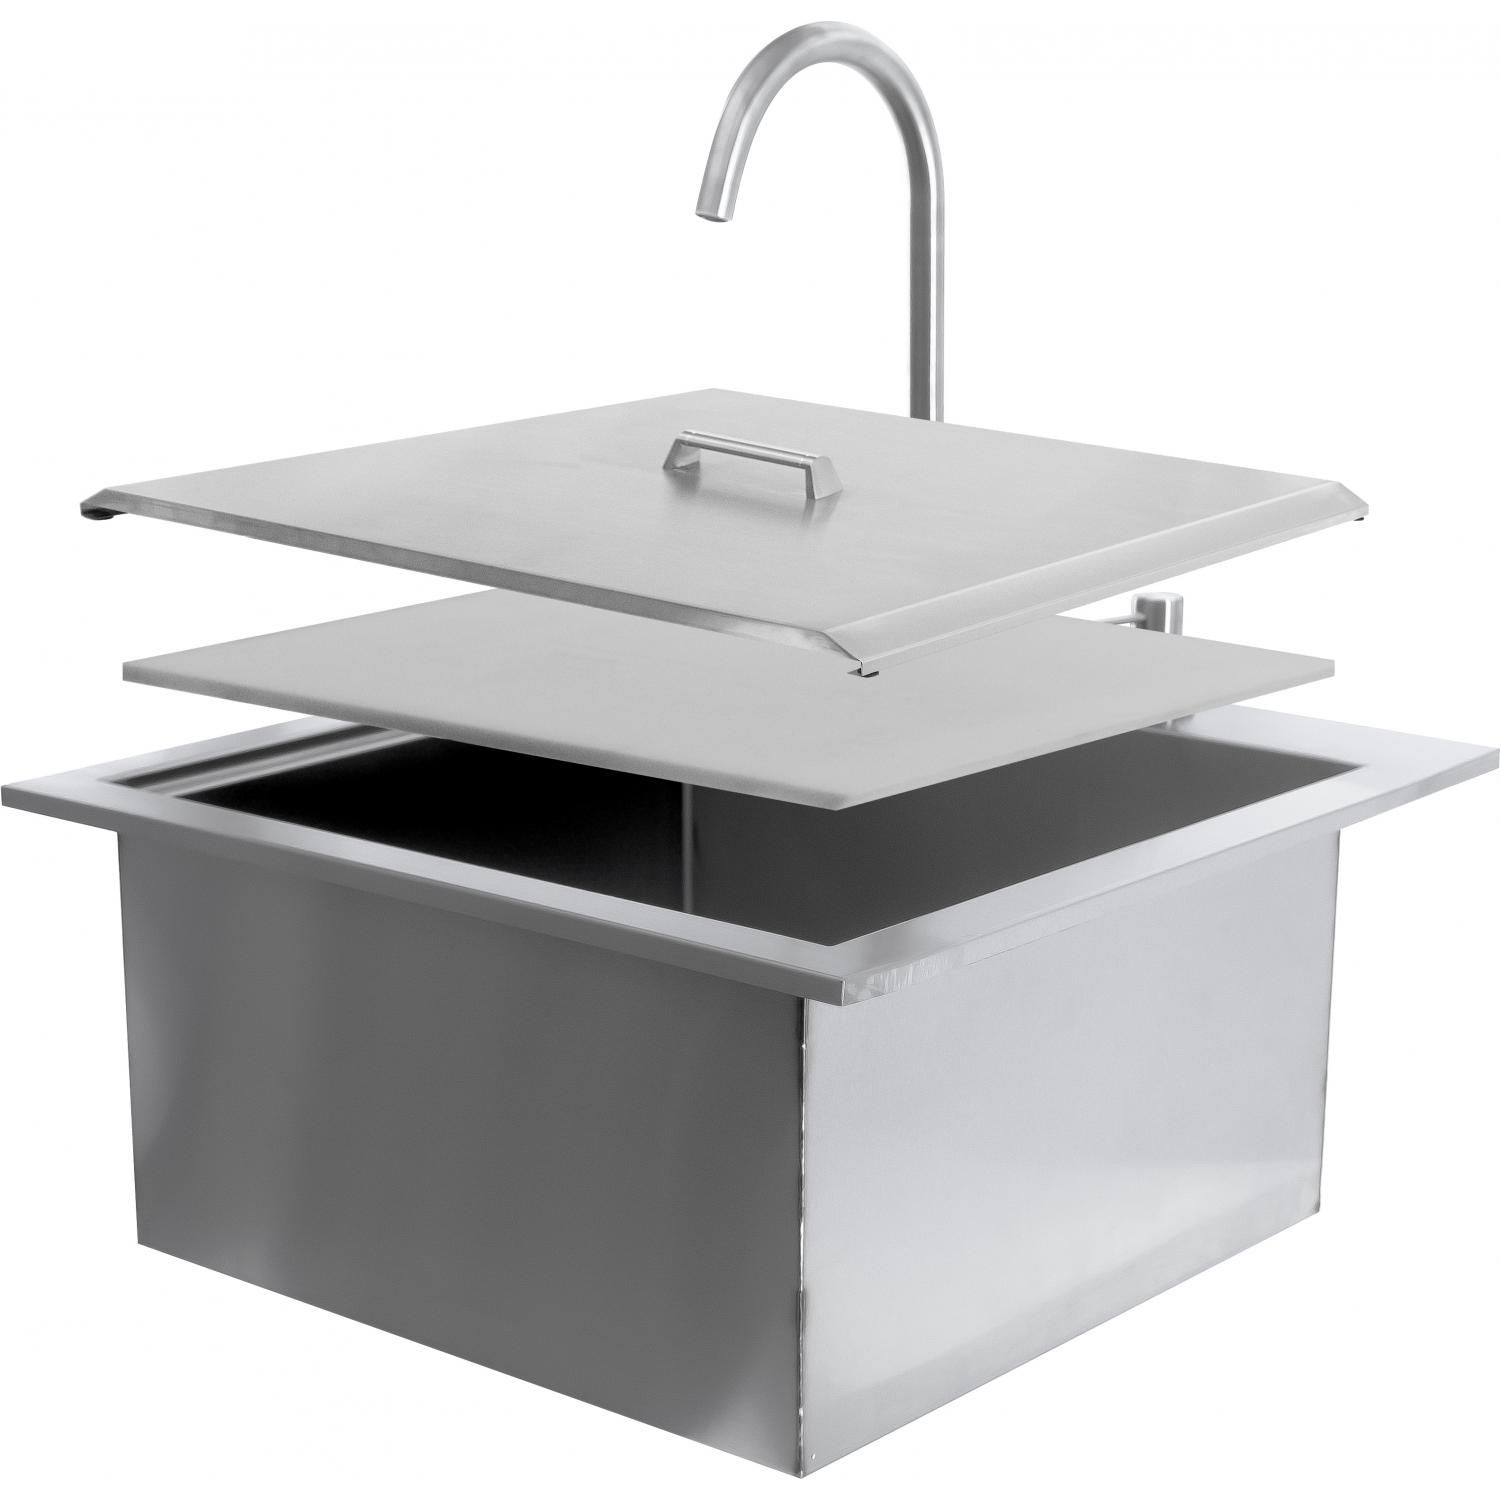 Bbqguys Sonoma 21 Outdoor Rated Stainless Steel Drop In Sink With Hot Cold Faucet Bbq 350h Sink 21 Sink Drop In Sink Faucet